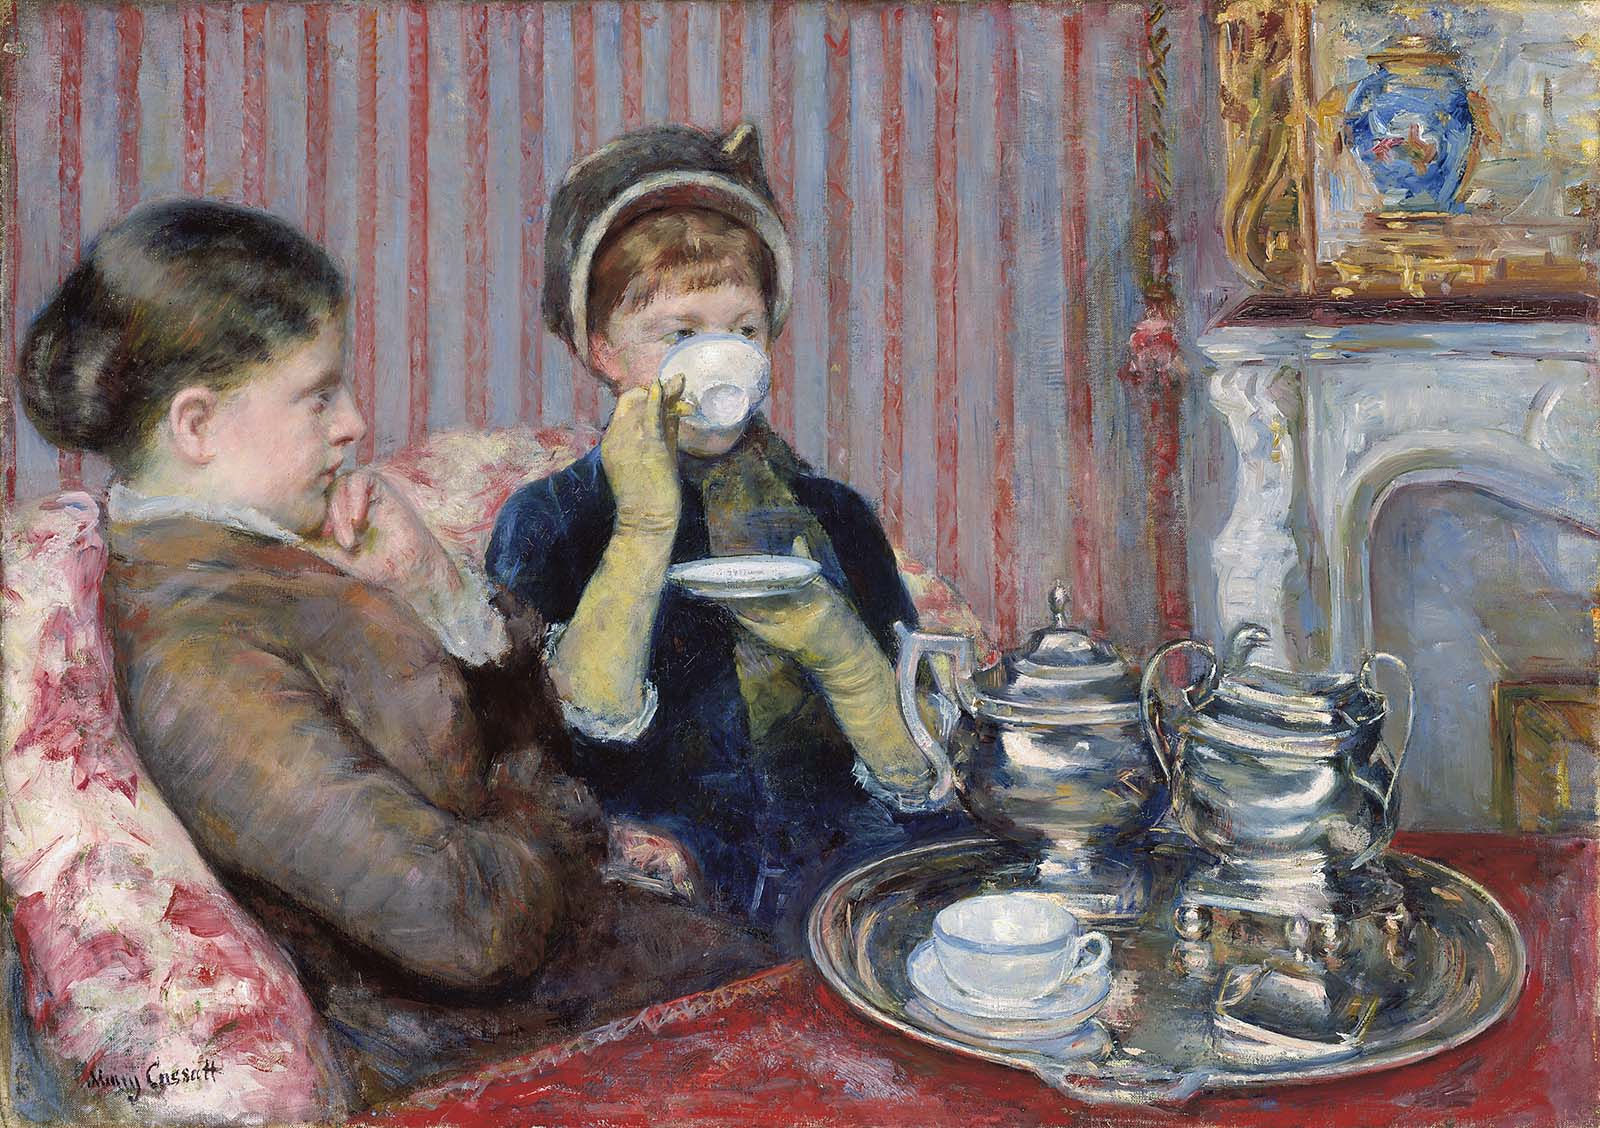 Mary Cassatt Painted Domestic Life In A Way Male Impressionists Couldnt